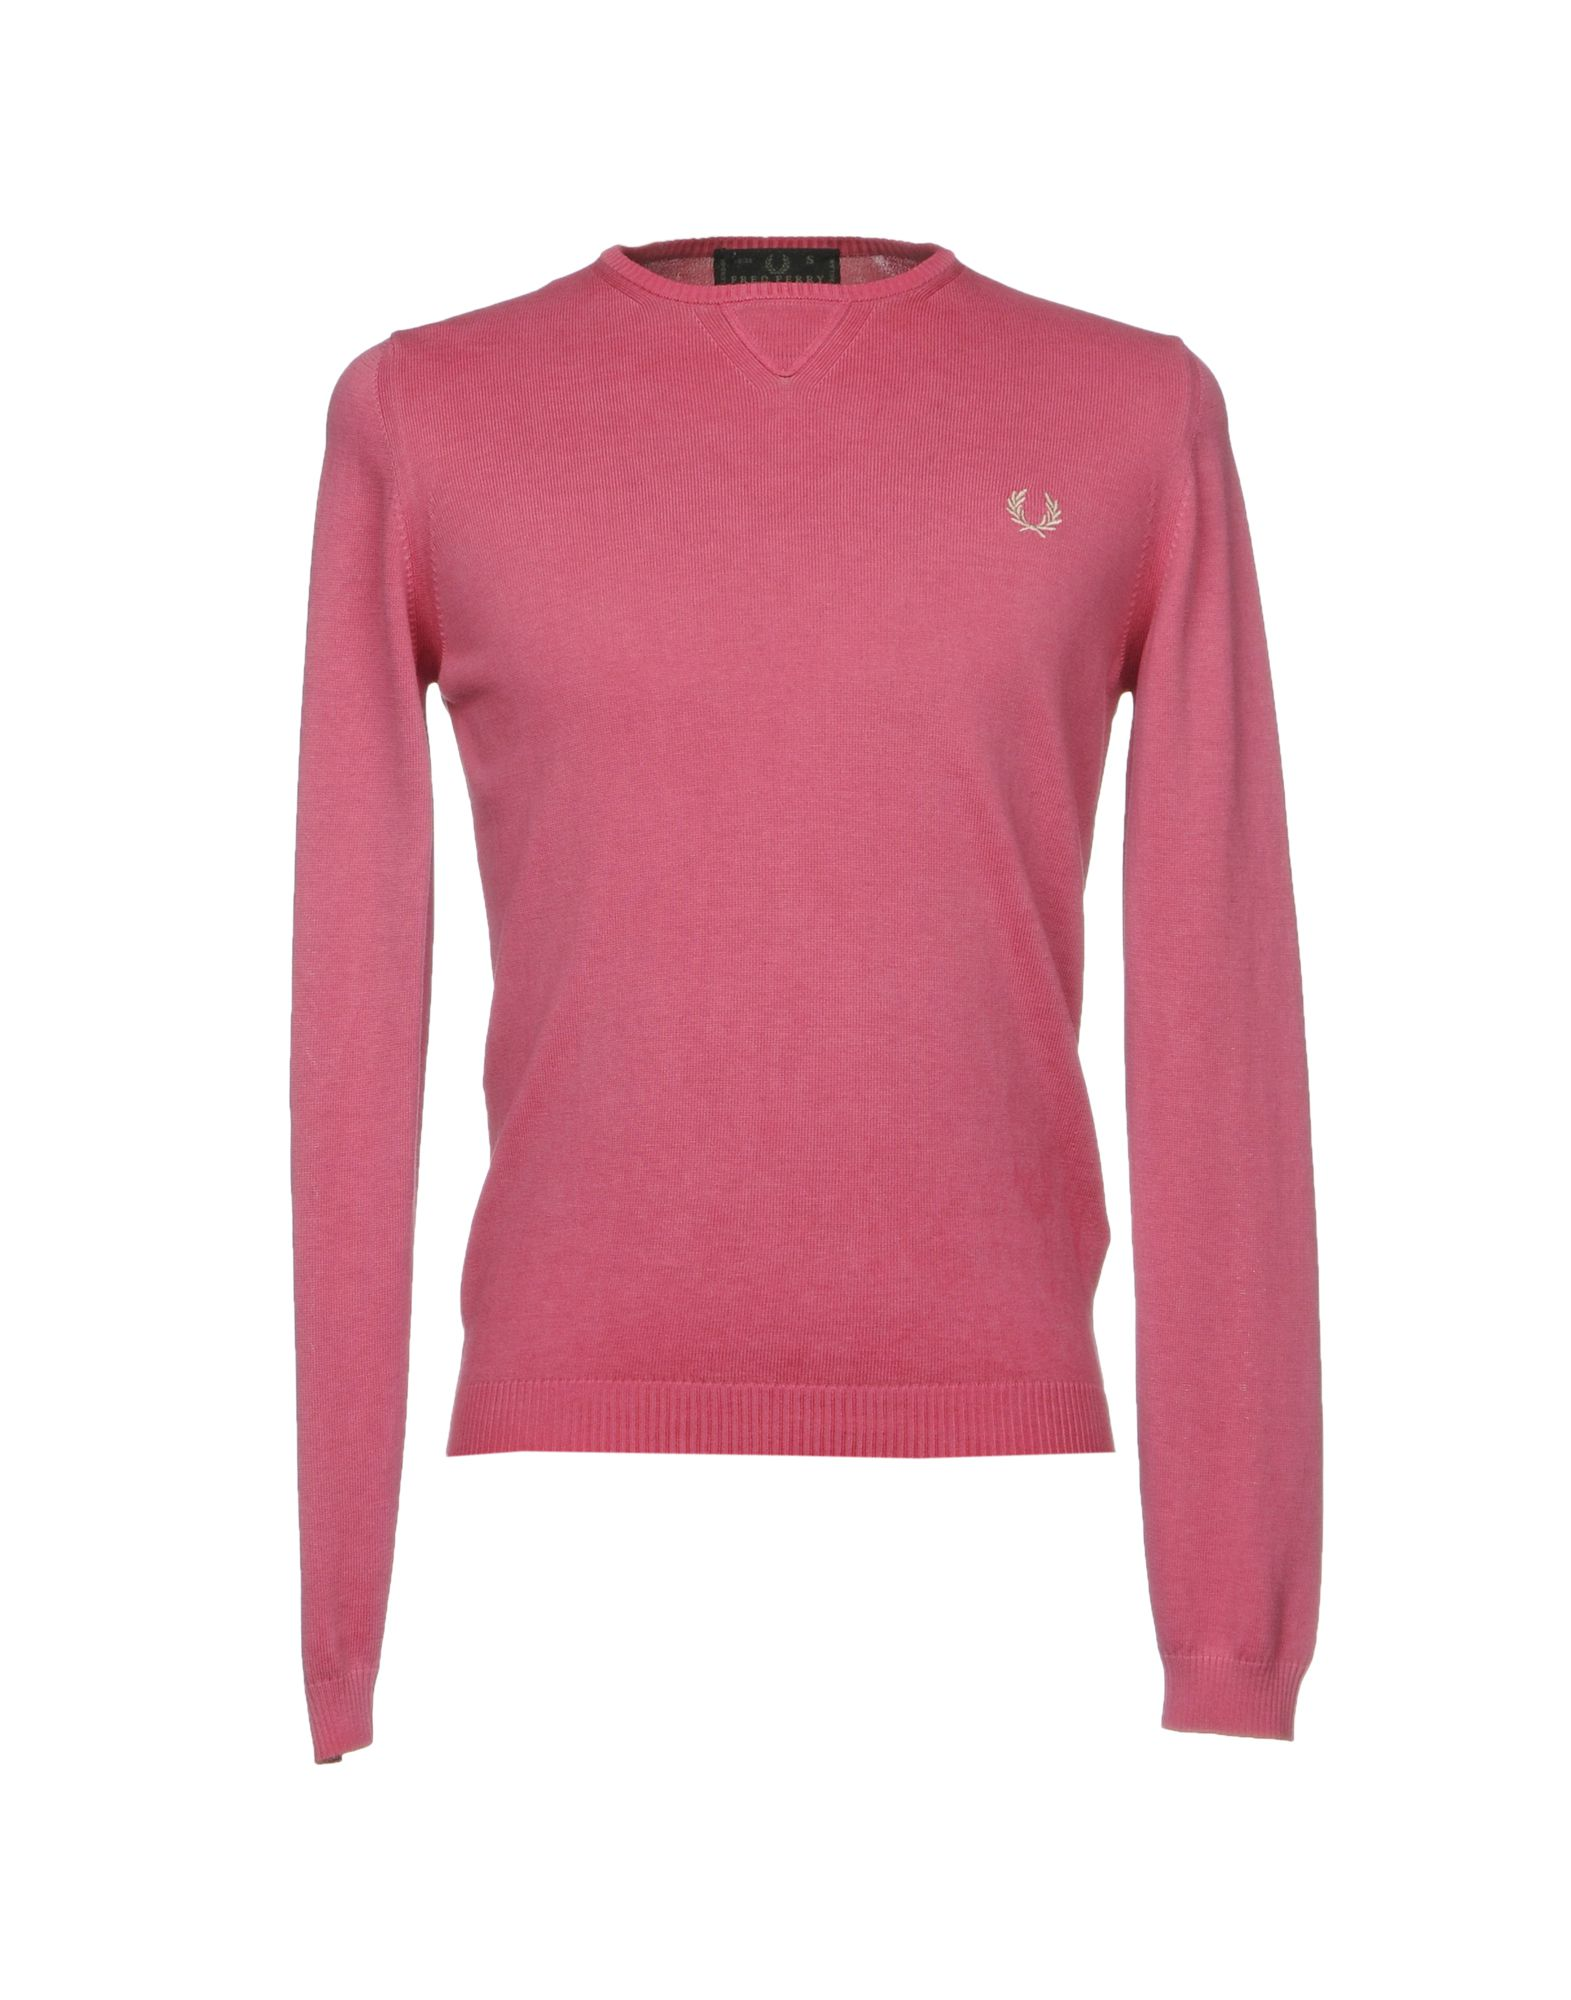 Pullover Fred Perry Uomo - Acquista online su